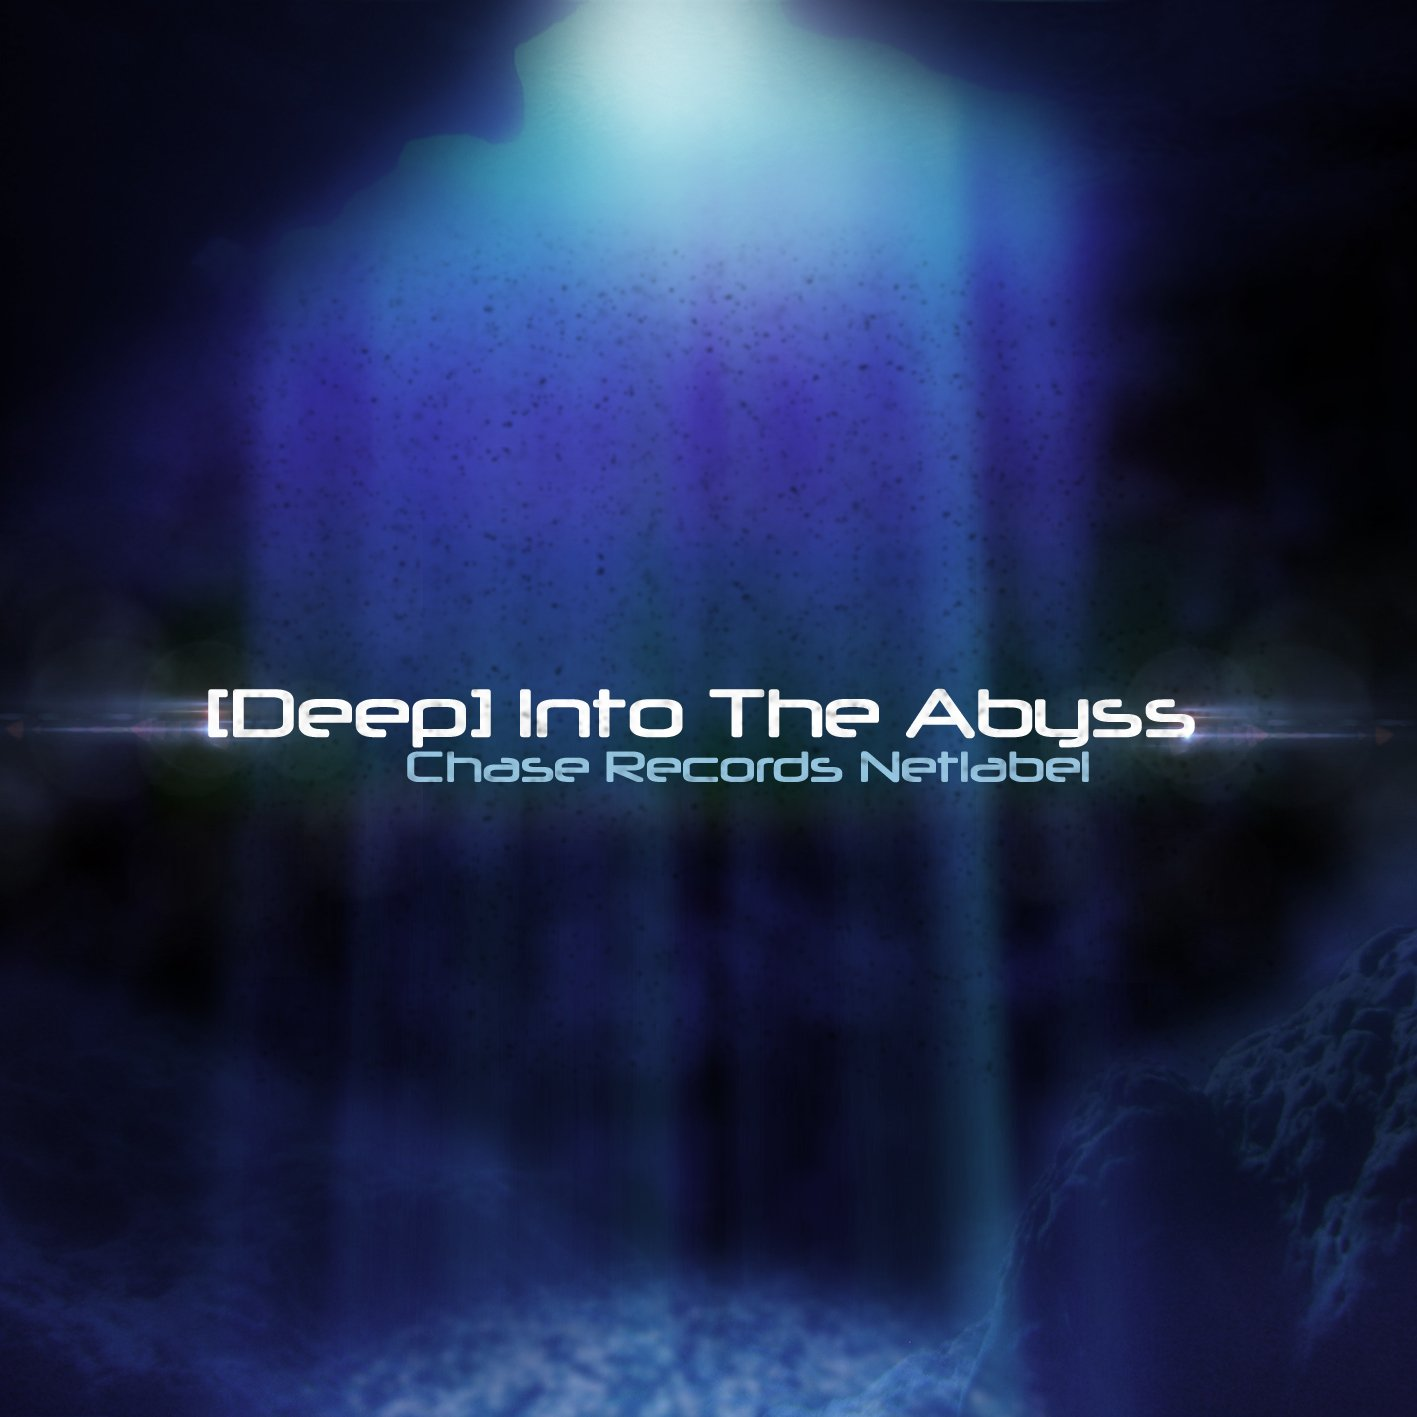 [Deep] Into The Abyss